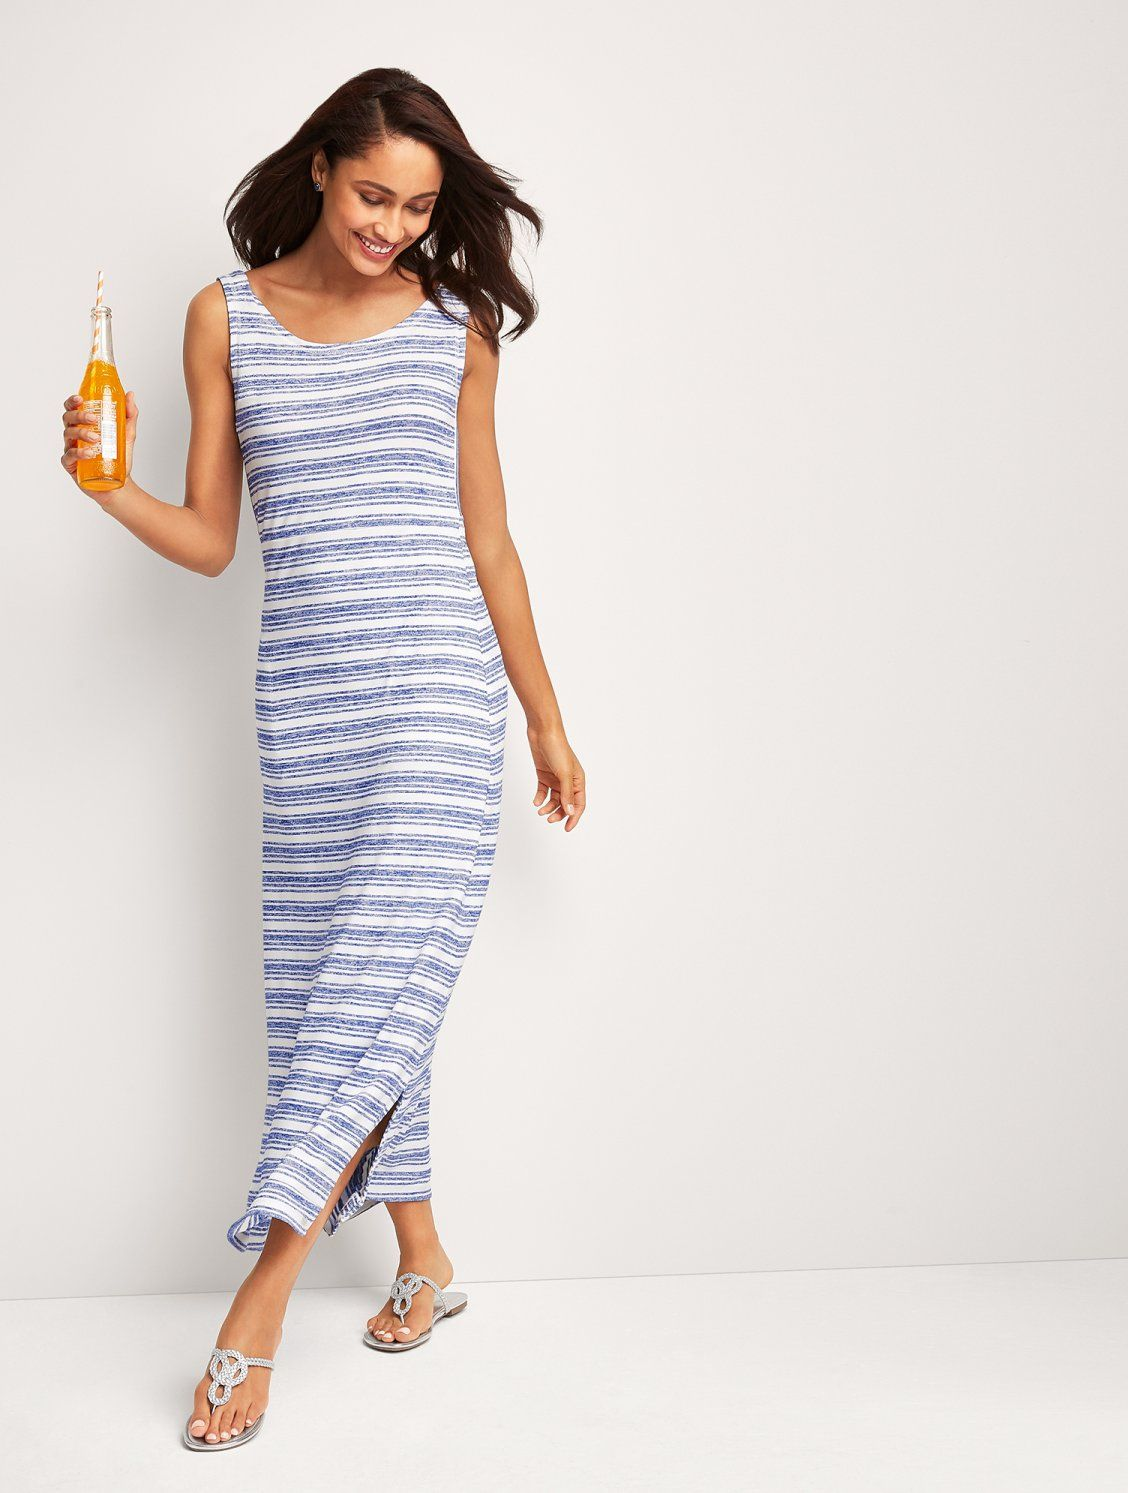 Super Flattering And Oh So Comfy Our Tie Back Maxi Dress Is Your Next Feel Good Go To Side Slits Off Striped Maxi Dresses Maxi Dresses Casual Summer Dresses [ 1493 x 1128 Pixel ]